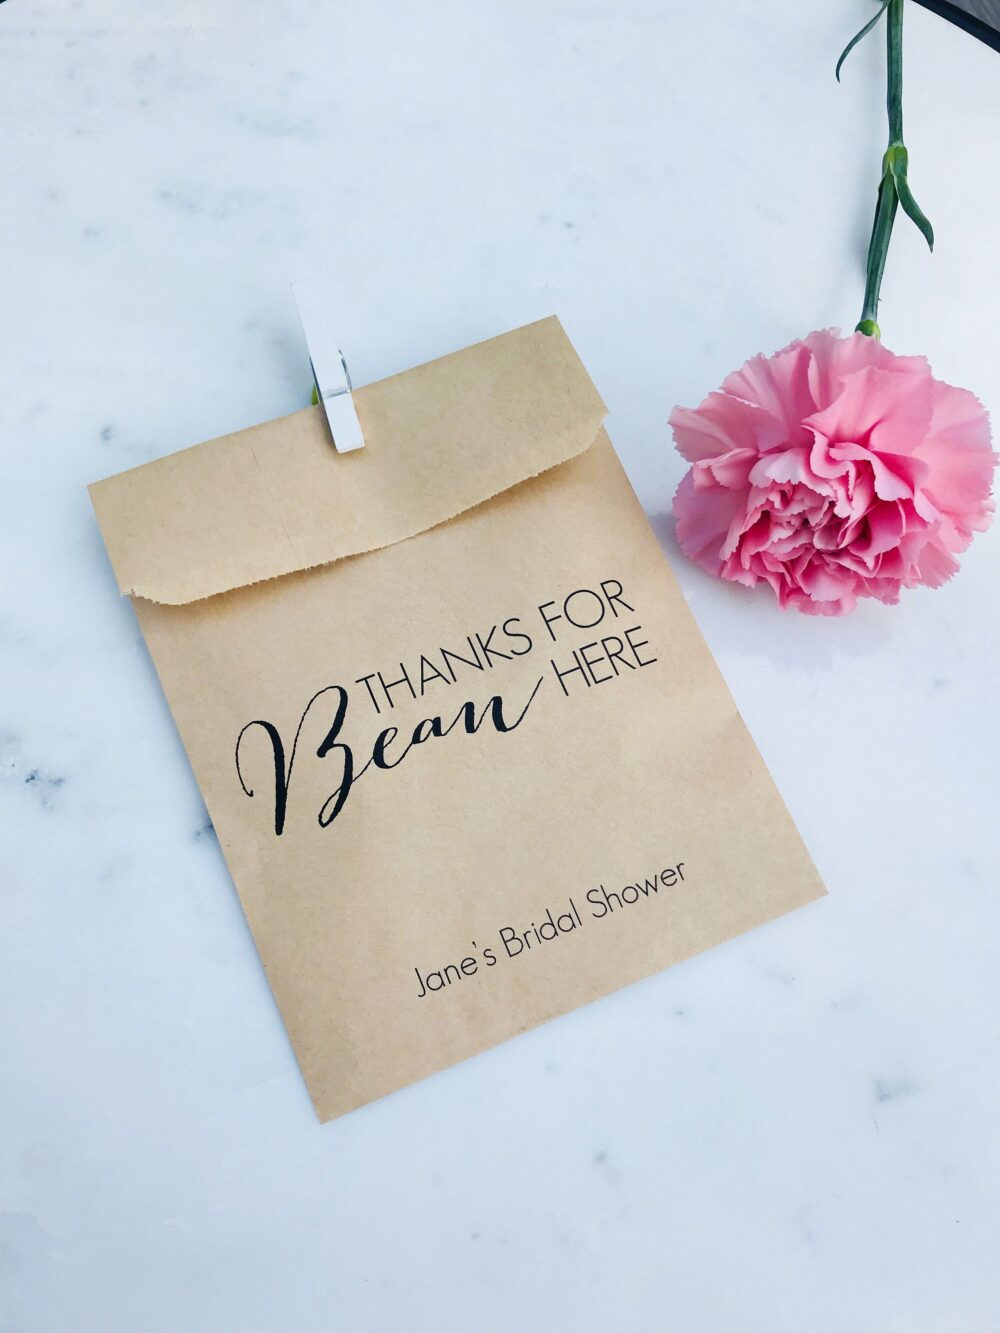 Wedding Favor Bags - Thanks For Bean Here Coffee Or Jelly Bean Bags Custom Printed On Kraft Brown Paper